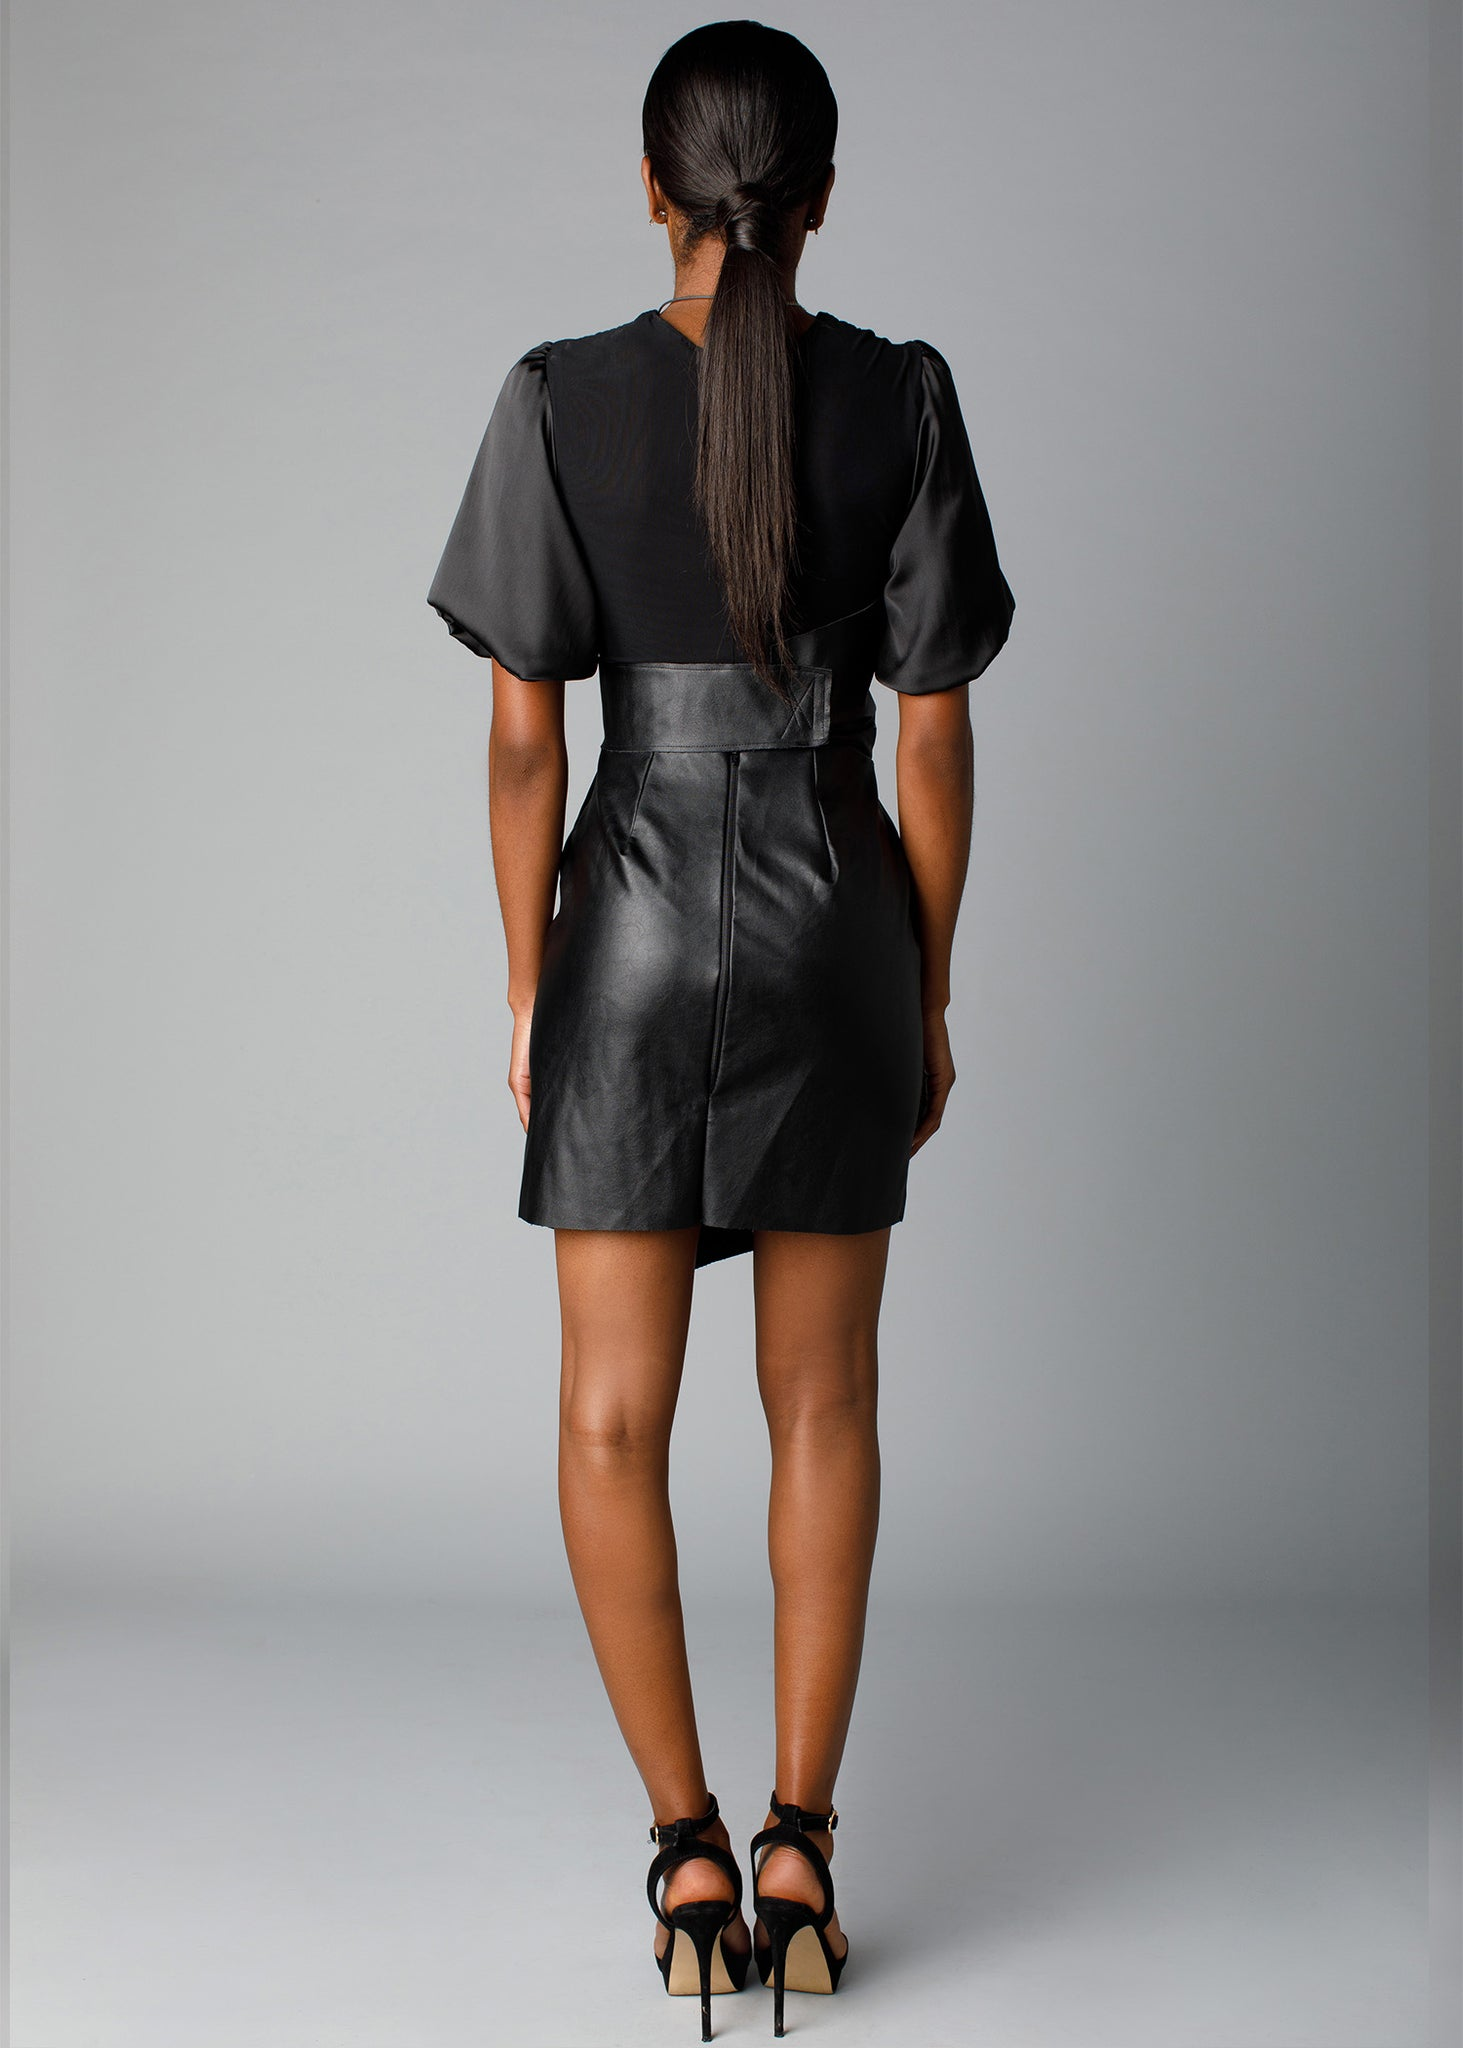 Vegan leather structured designed skirt